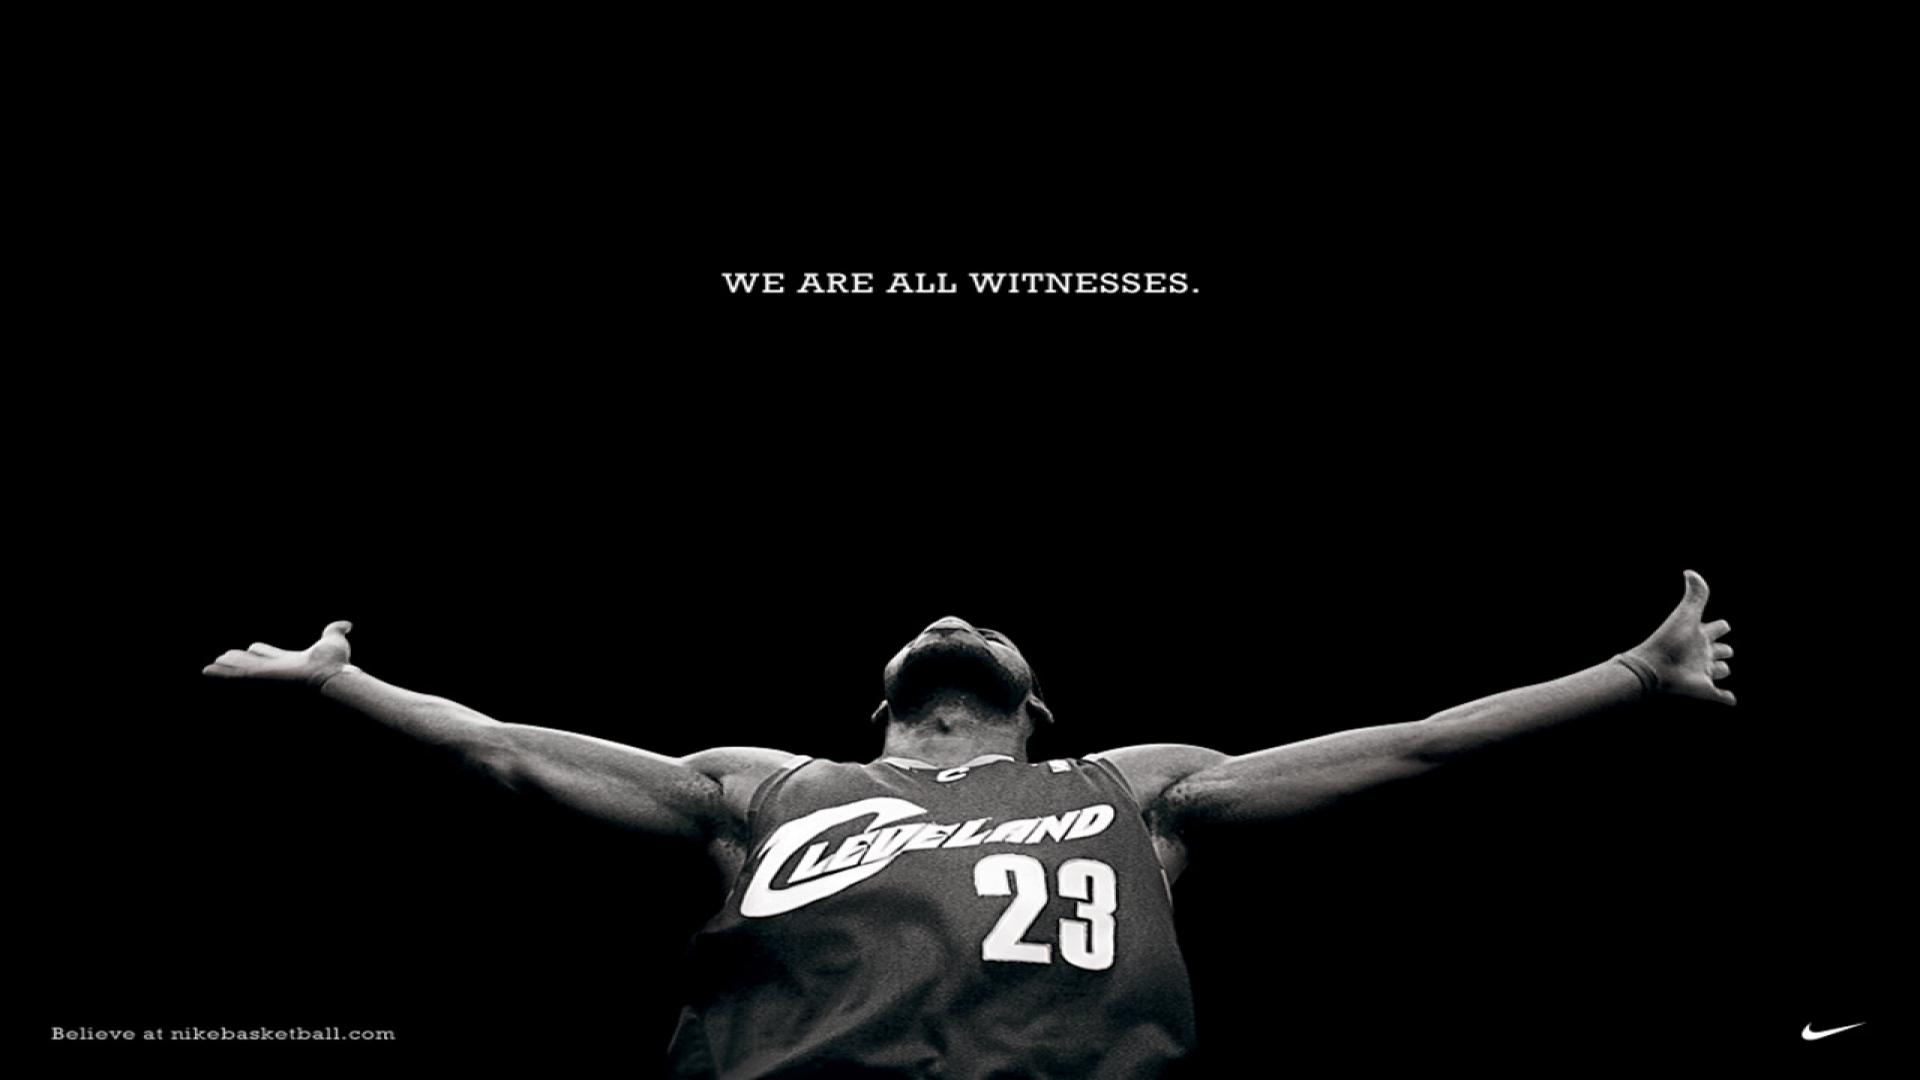 a9bdd53e33b Lebron James Nike Wallpapers - WallpaperSafari